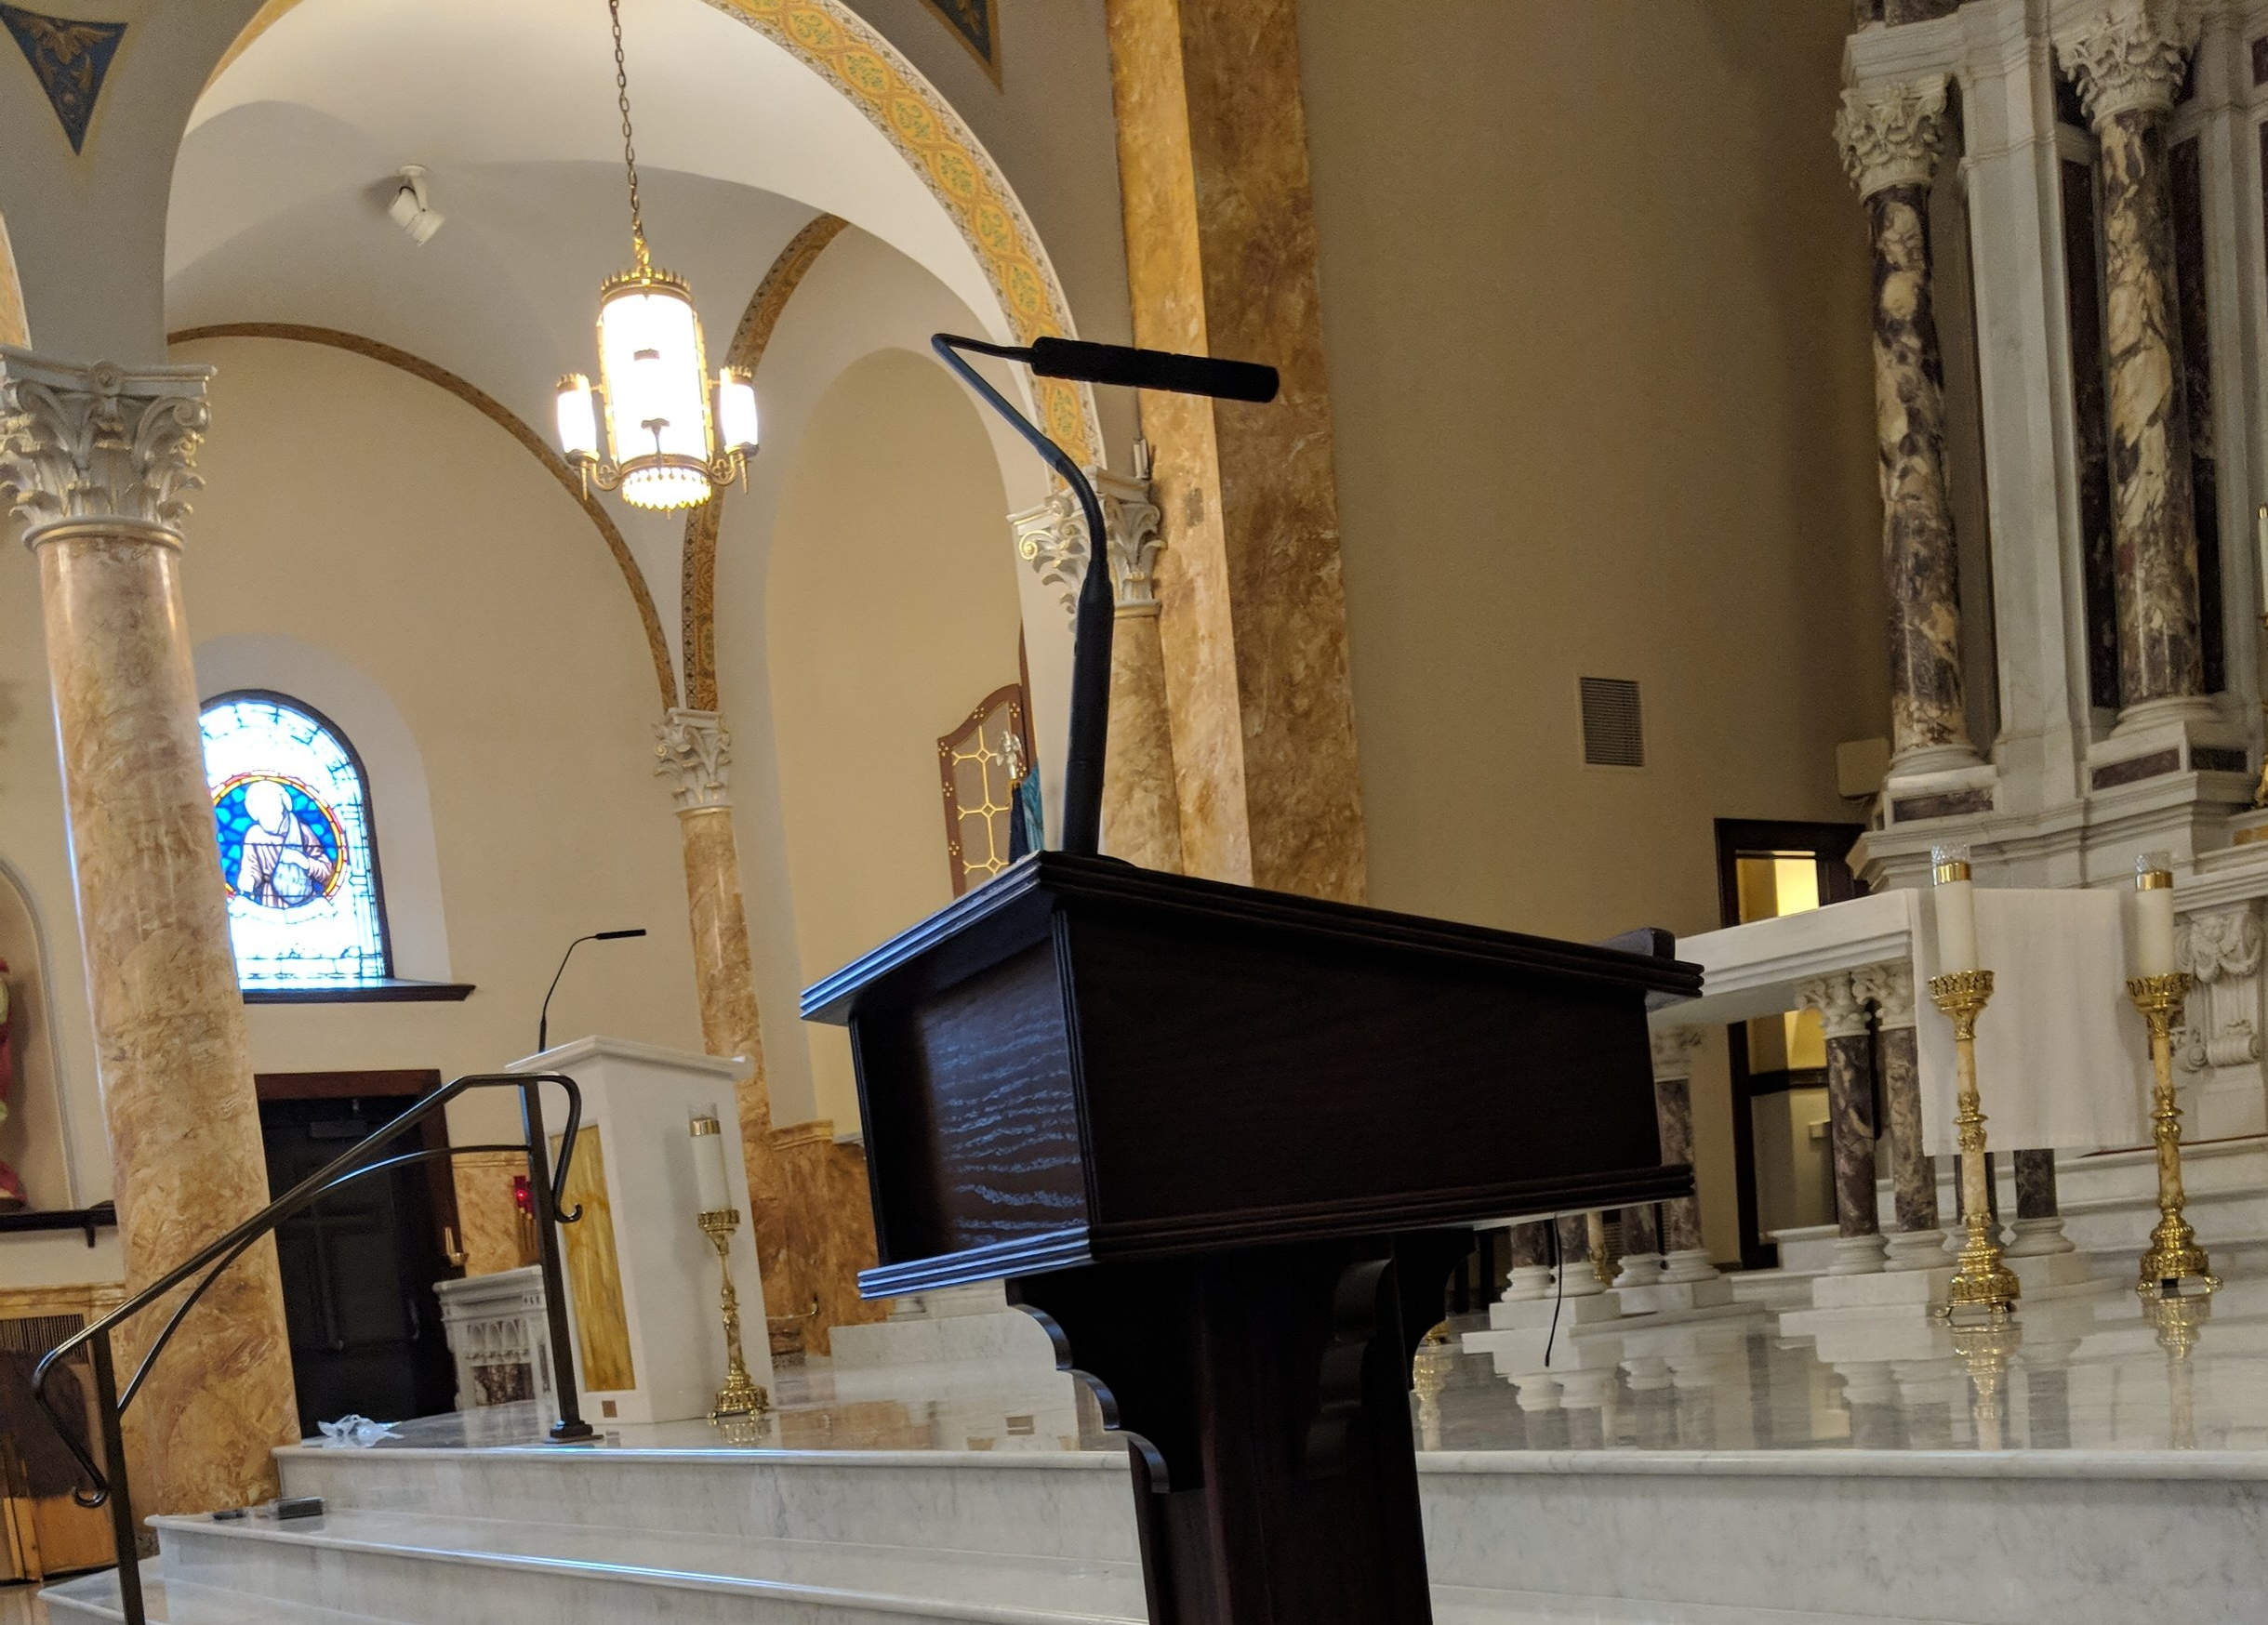 The cantor's podium has been hardwired with a microphone connection and is utilizing an Audio-Technica Engineered series microphone.